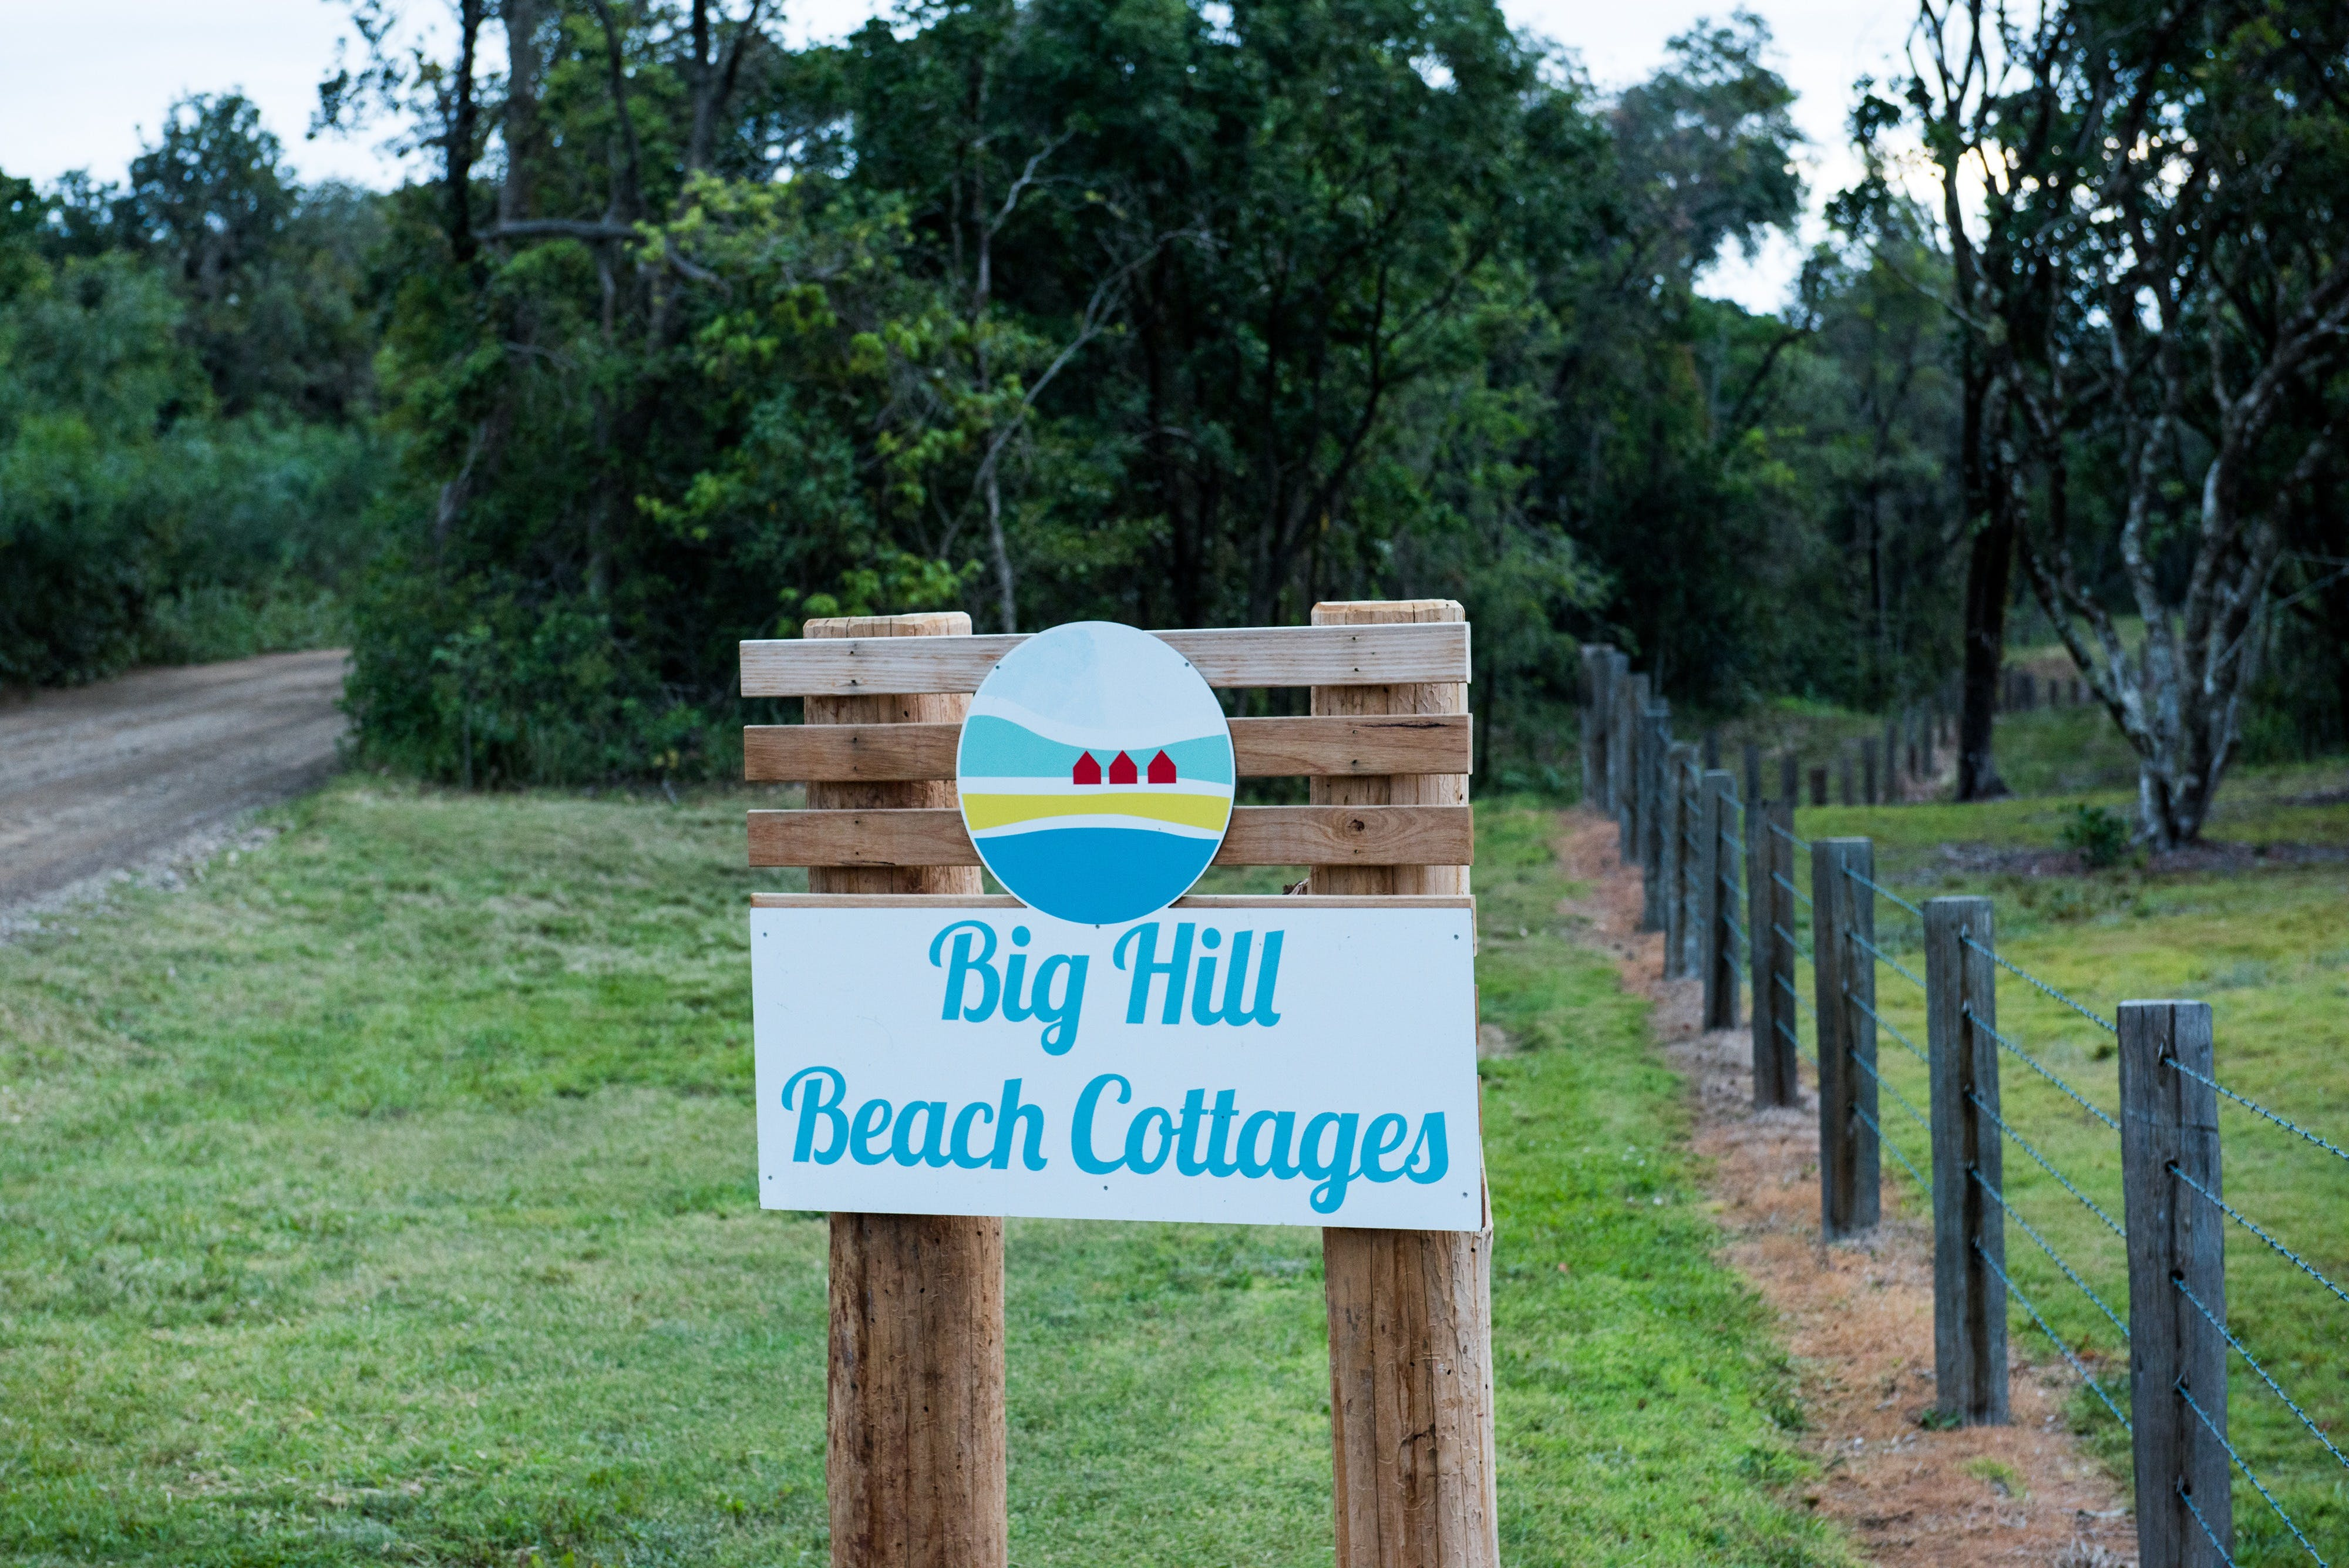 Big Hill Beach Cottages - Accommodation Resorts